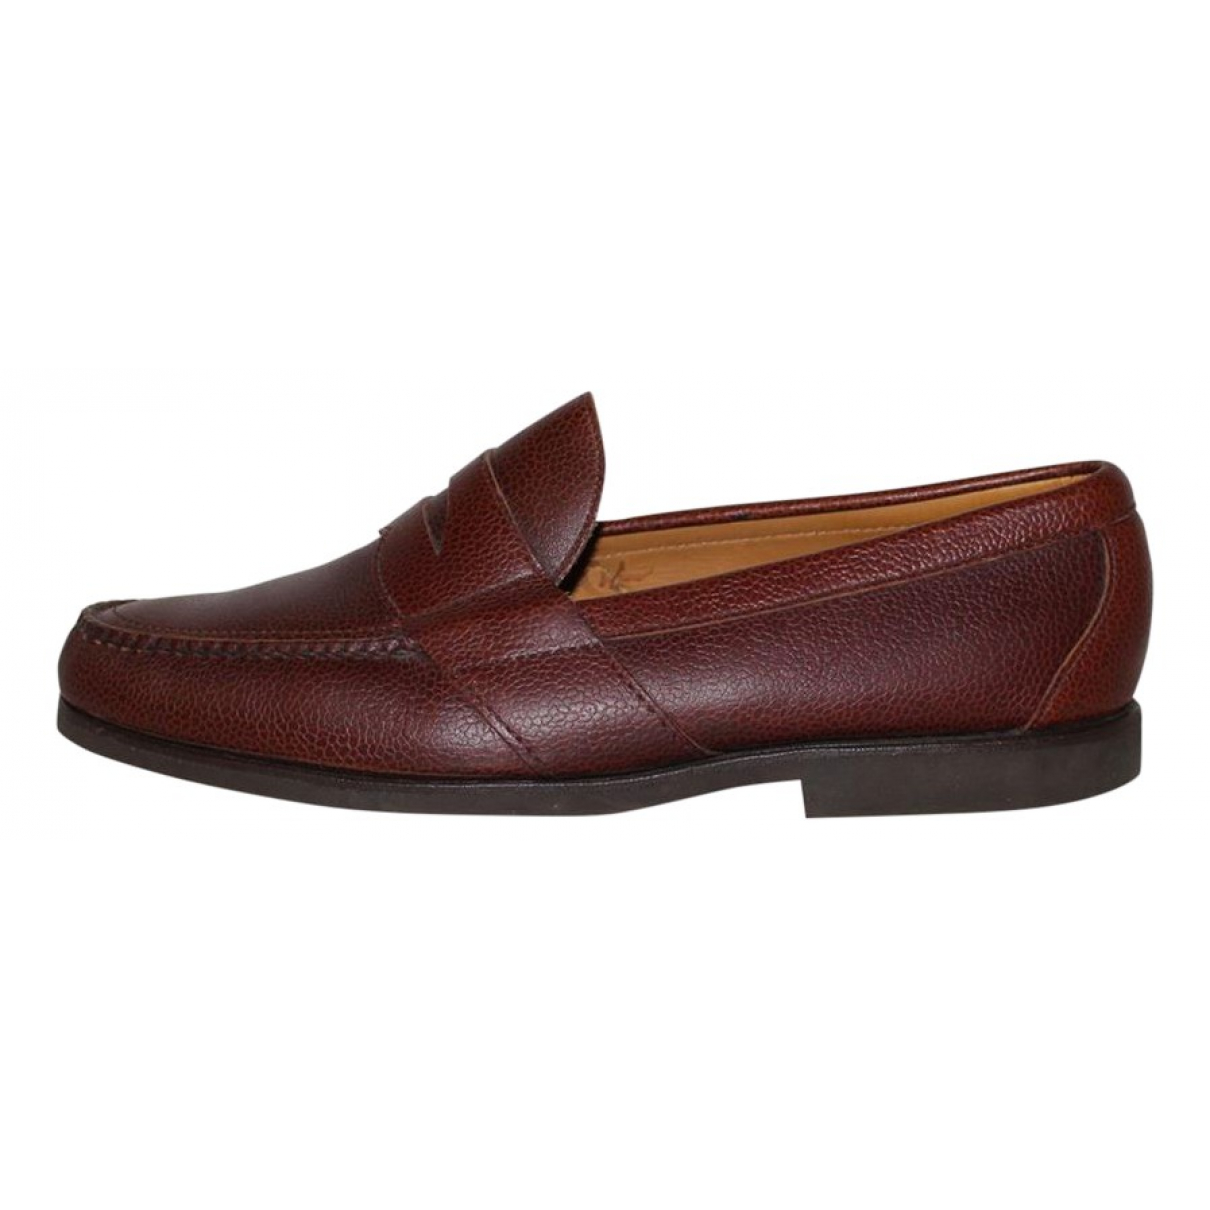 Cole Haan N Brown Leather Flats for Men 45 EU